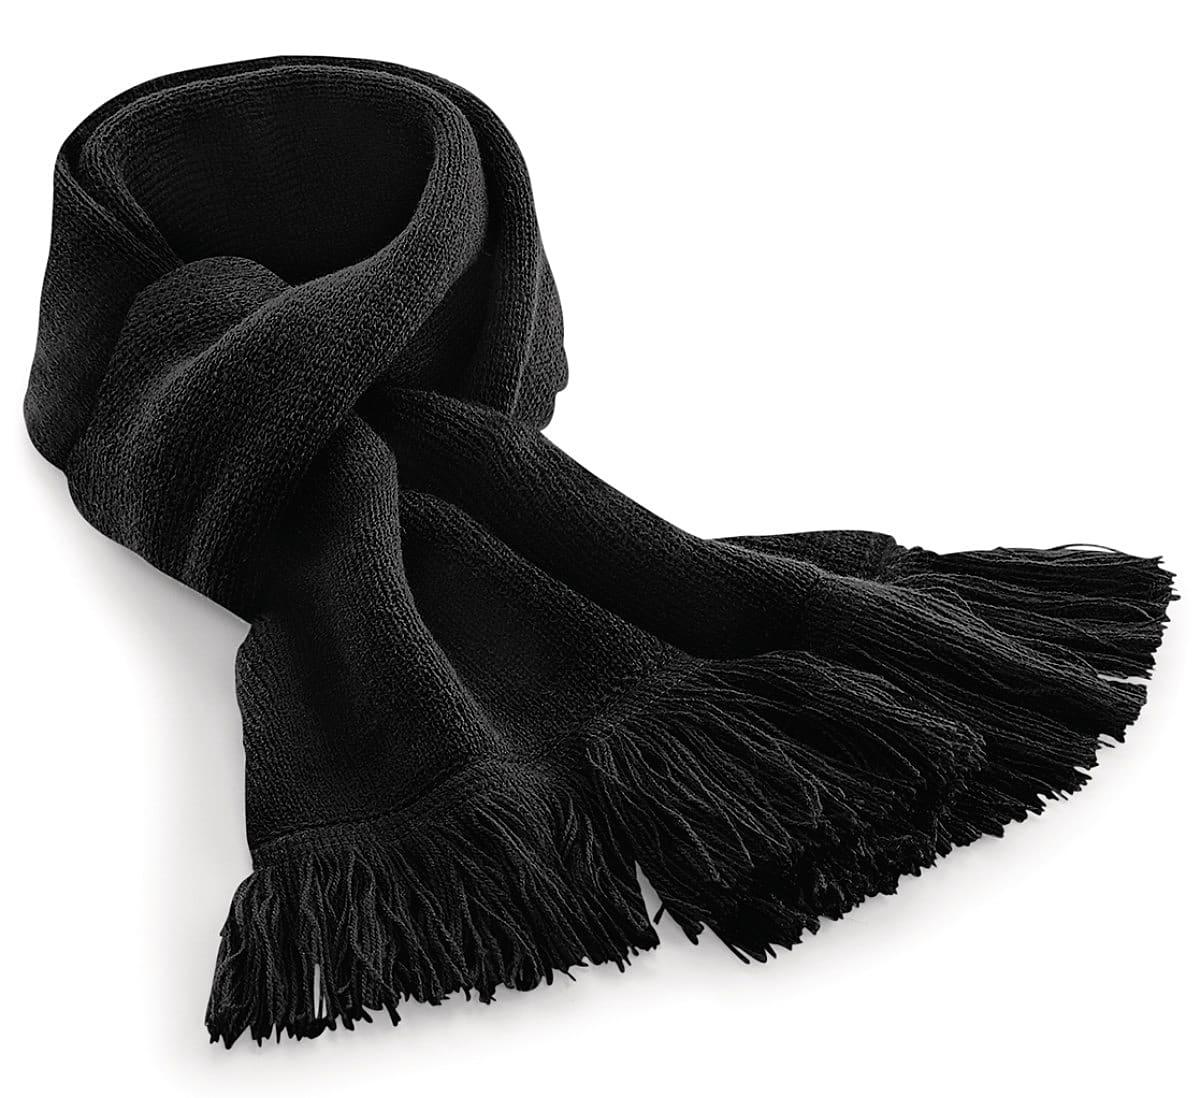 Beechfield Classic Knitted Scarf in Black (Product Code: B470)